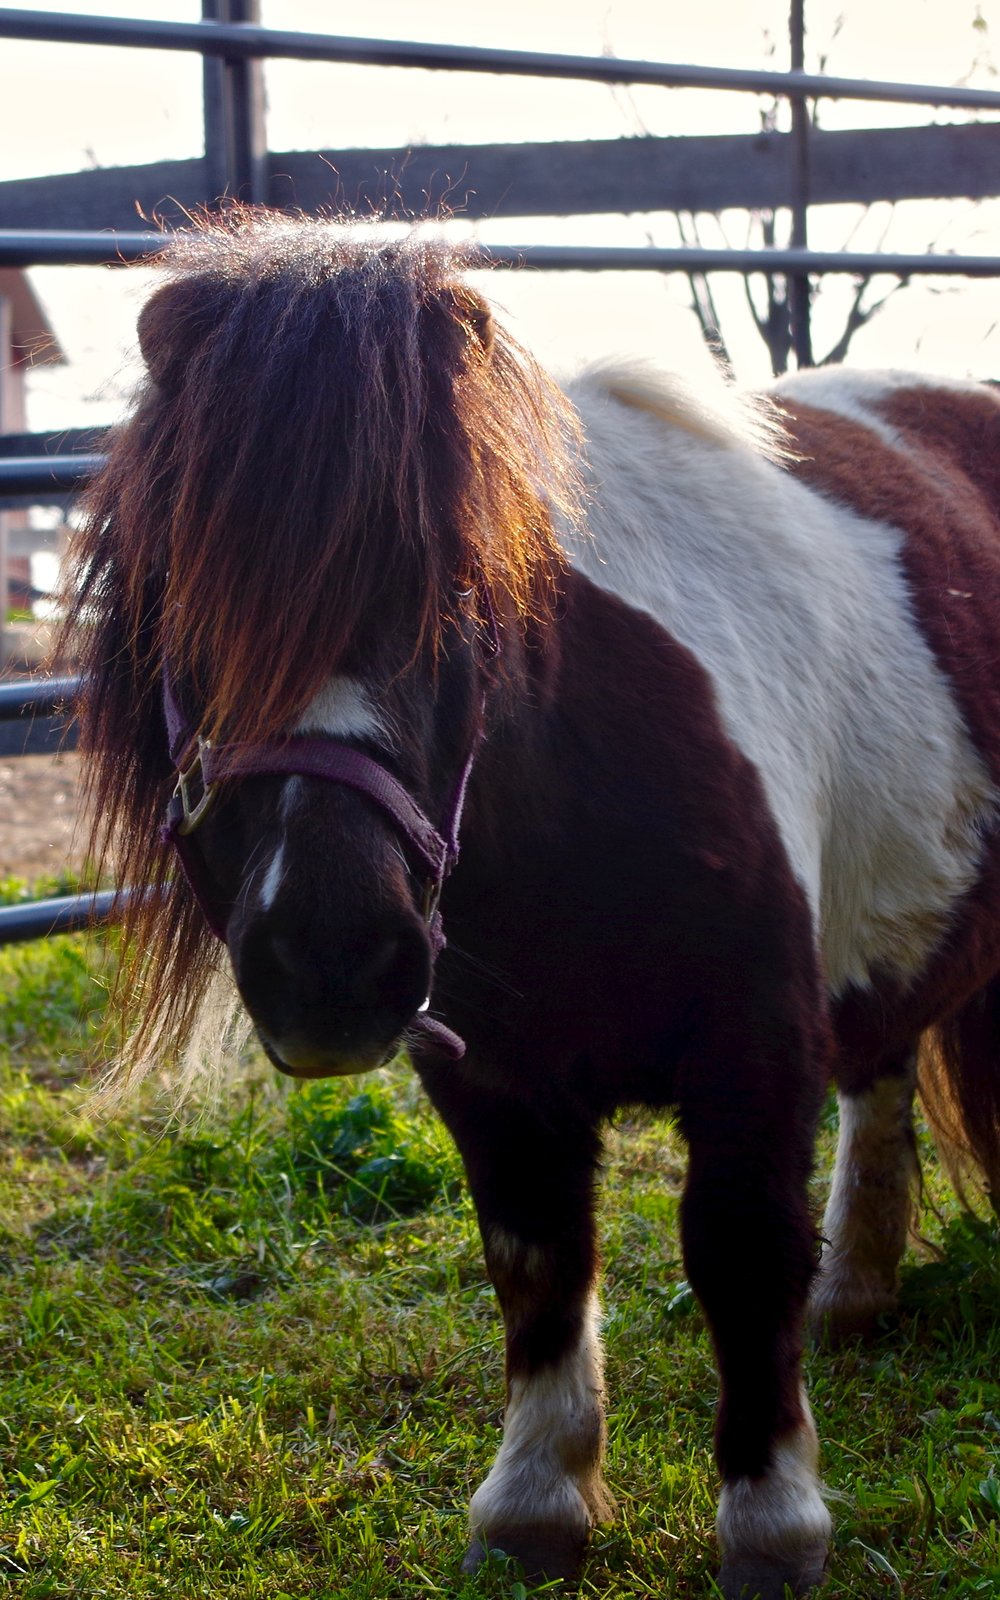 Punkie - Seeking a sponsor!Breed: Miniature HorseAfter his owners could not find a buyer for Punkie, Stepping Stone Farms adopted him along with Taffy. He definitely has